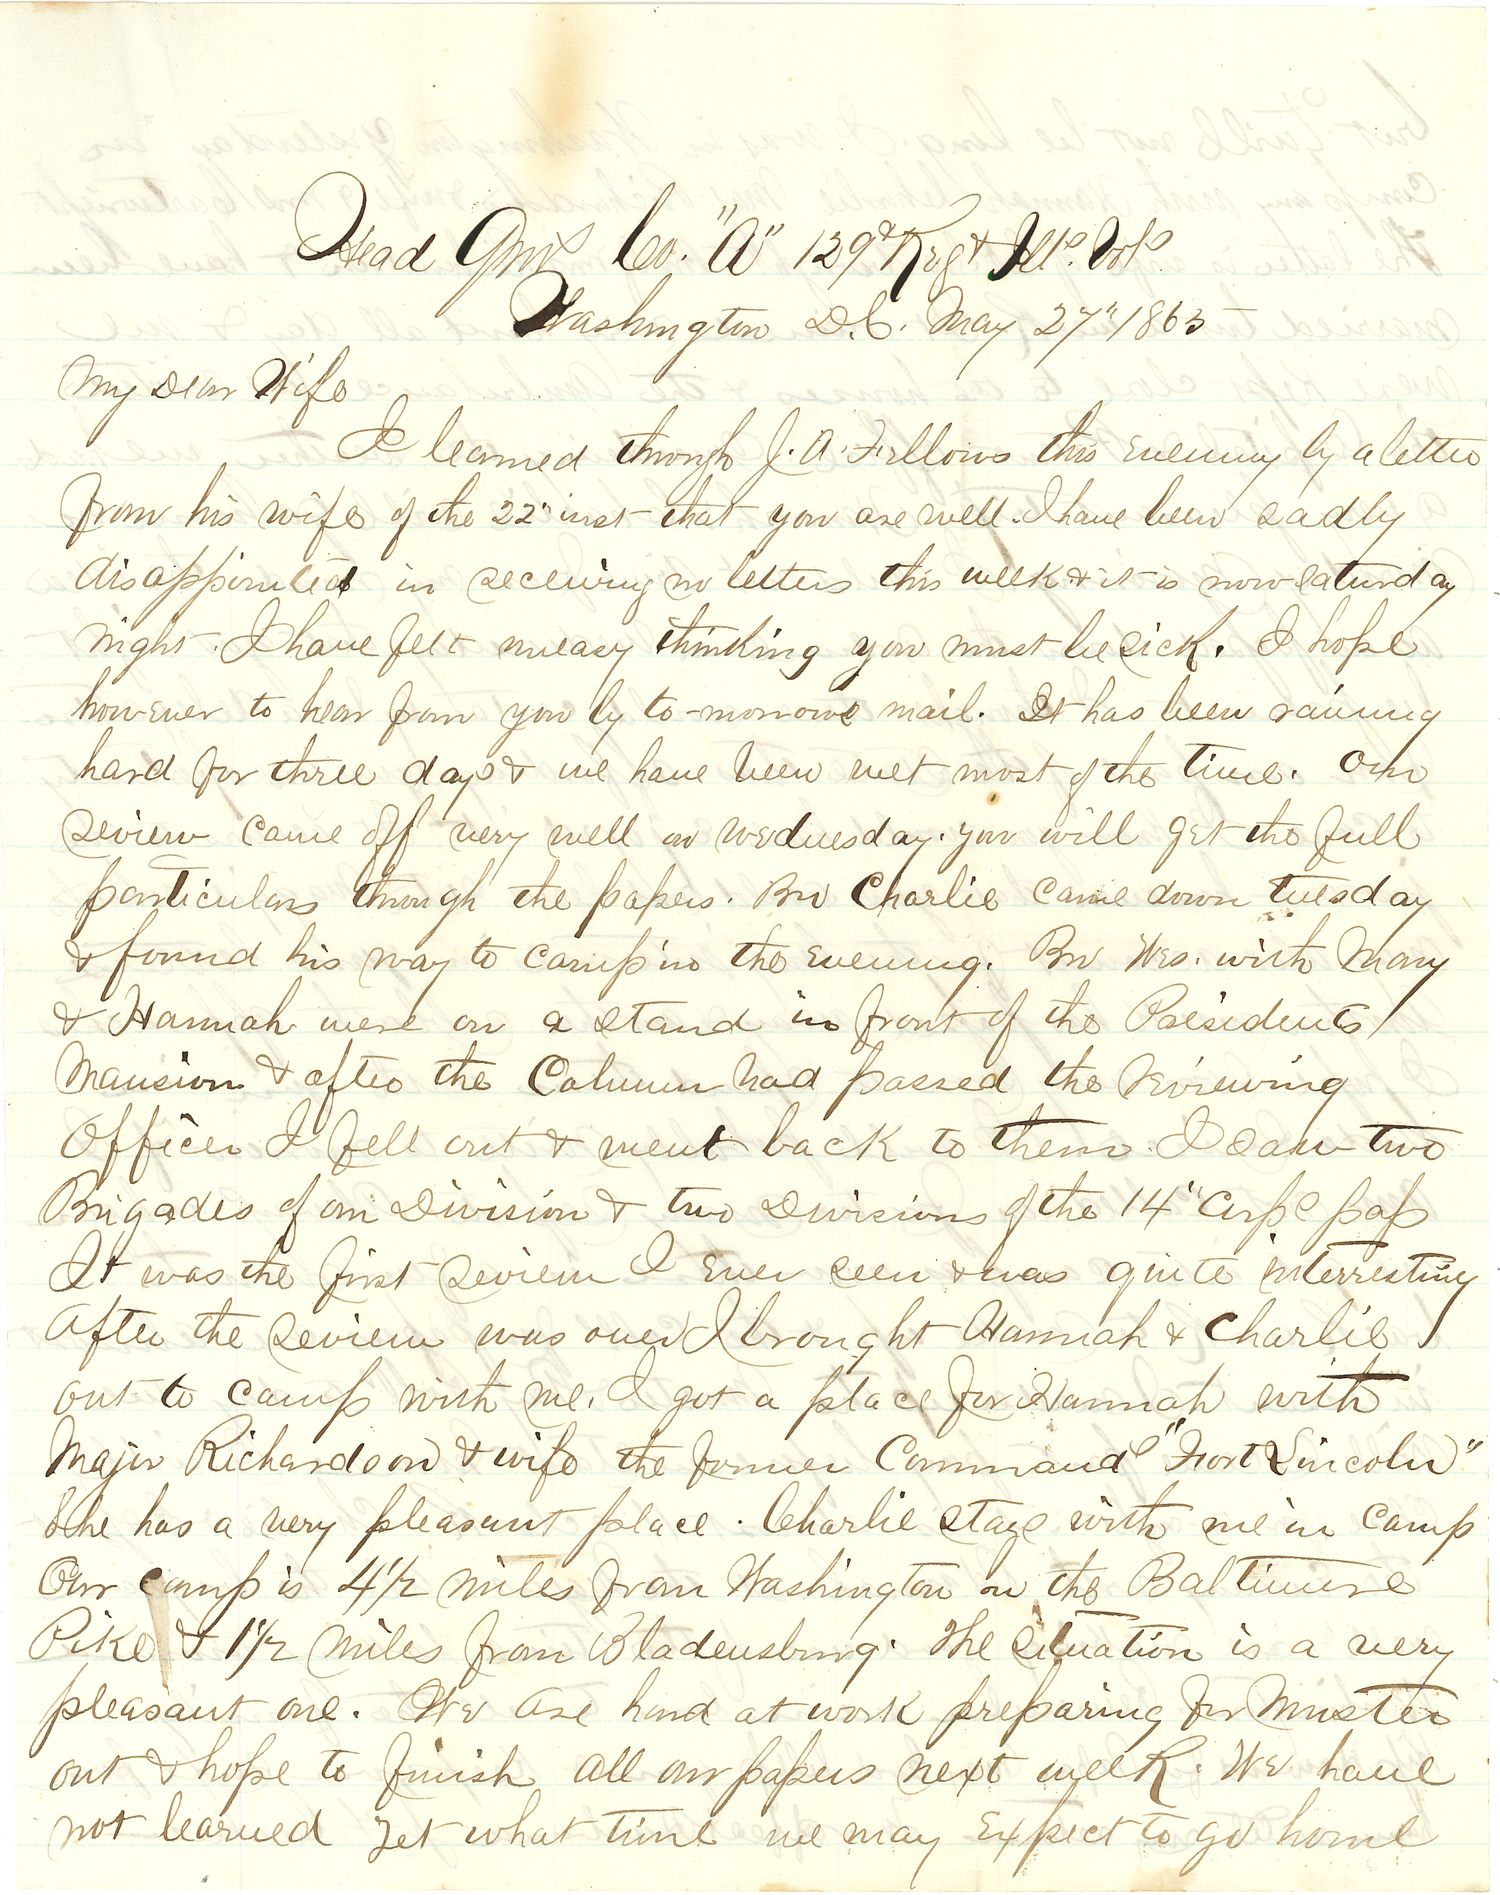 Joseph Culver Letter, May 27, 1865, Page 1